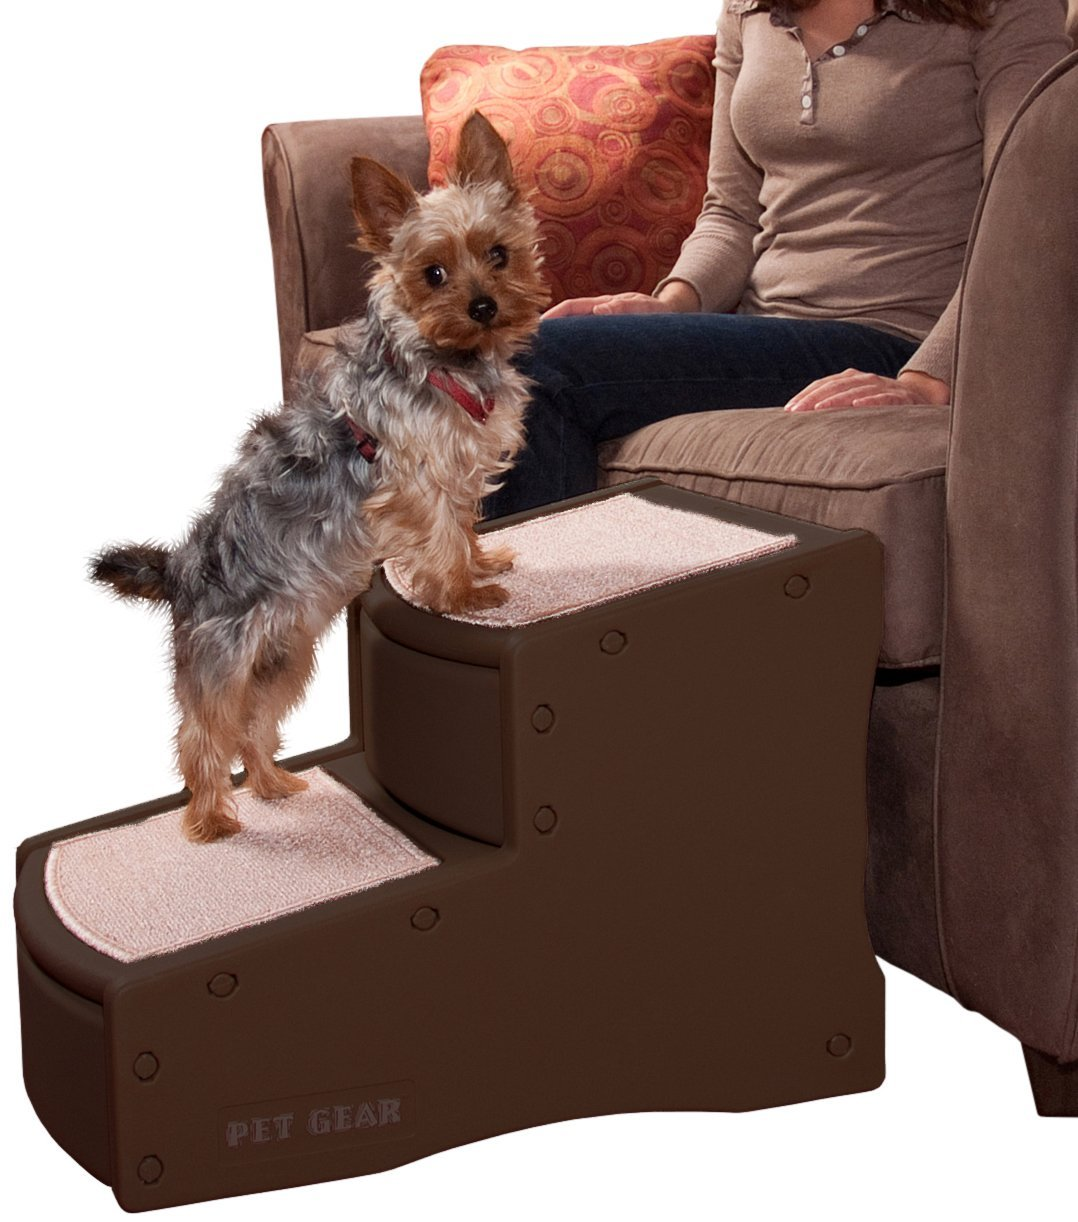 Pet Gear Easy Step II Pet Stairs, 2 Step for Cats/Dogs up to 150 Pounds, Portable, Removable Washable Carpet Tread by Pet Gear